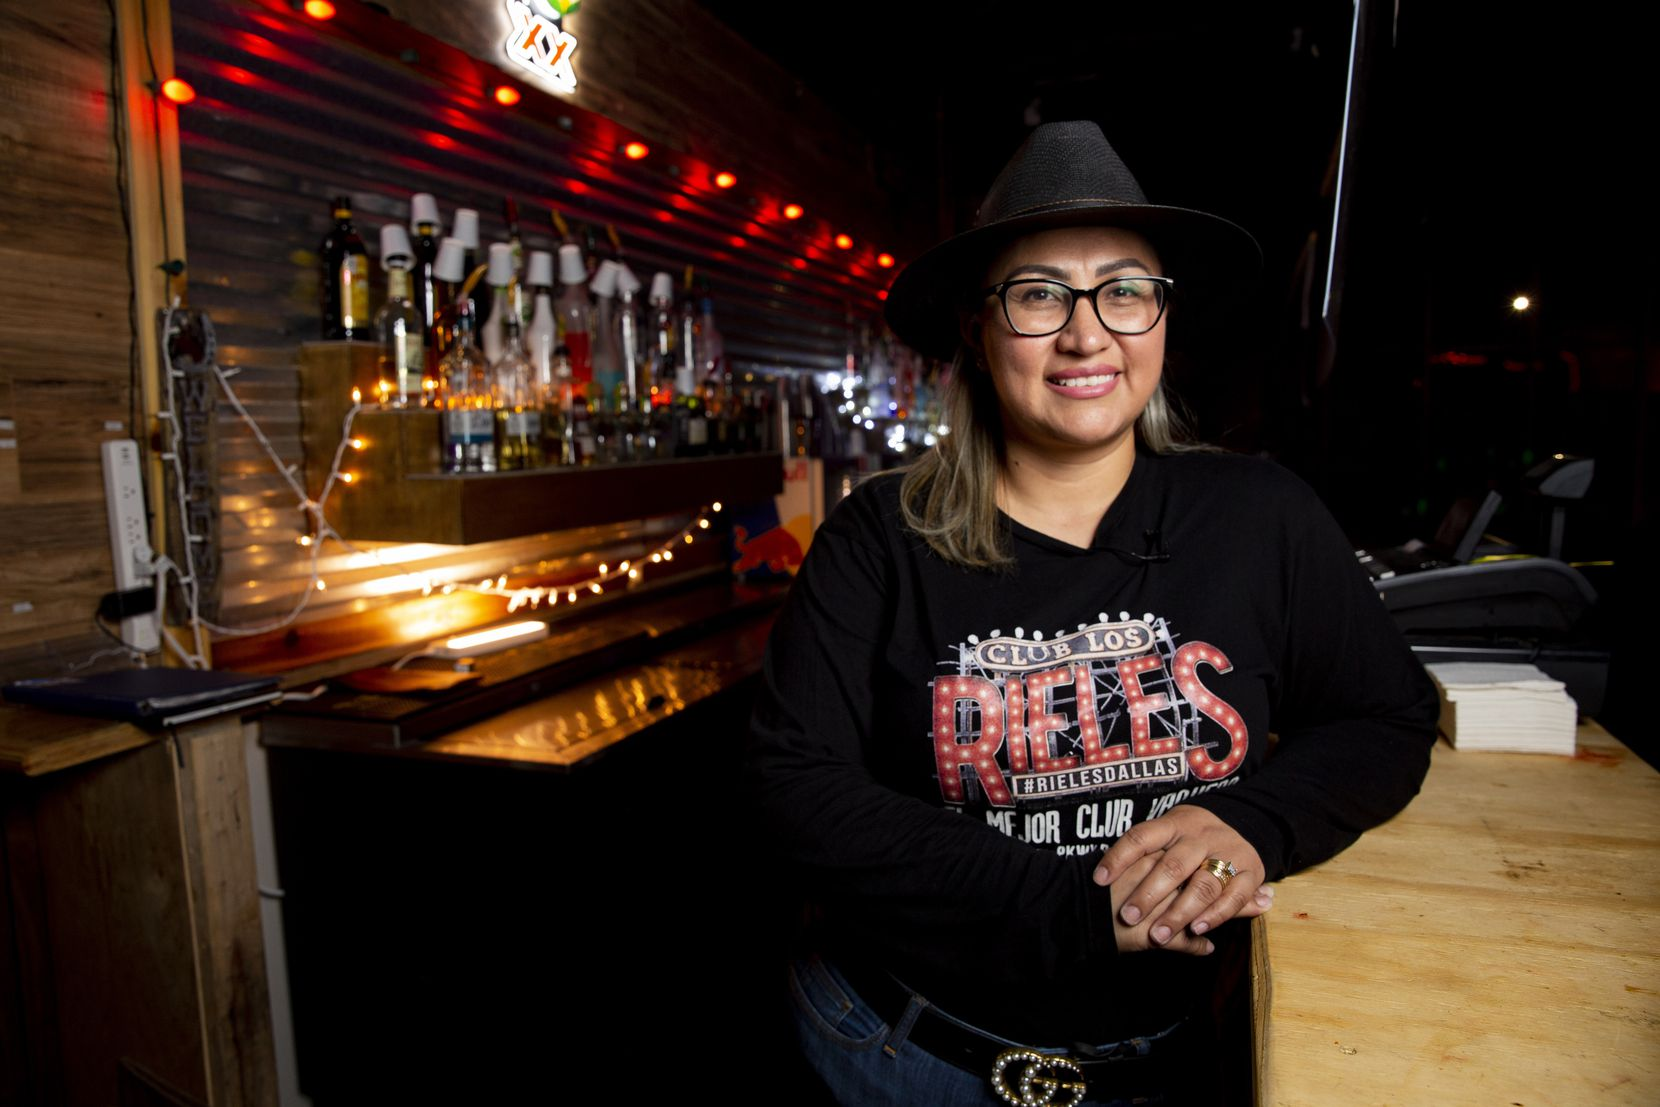 Marta Luis owns and operates Club Los Rieles with her husband.